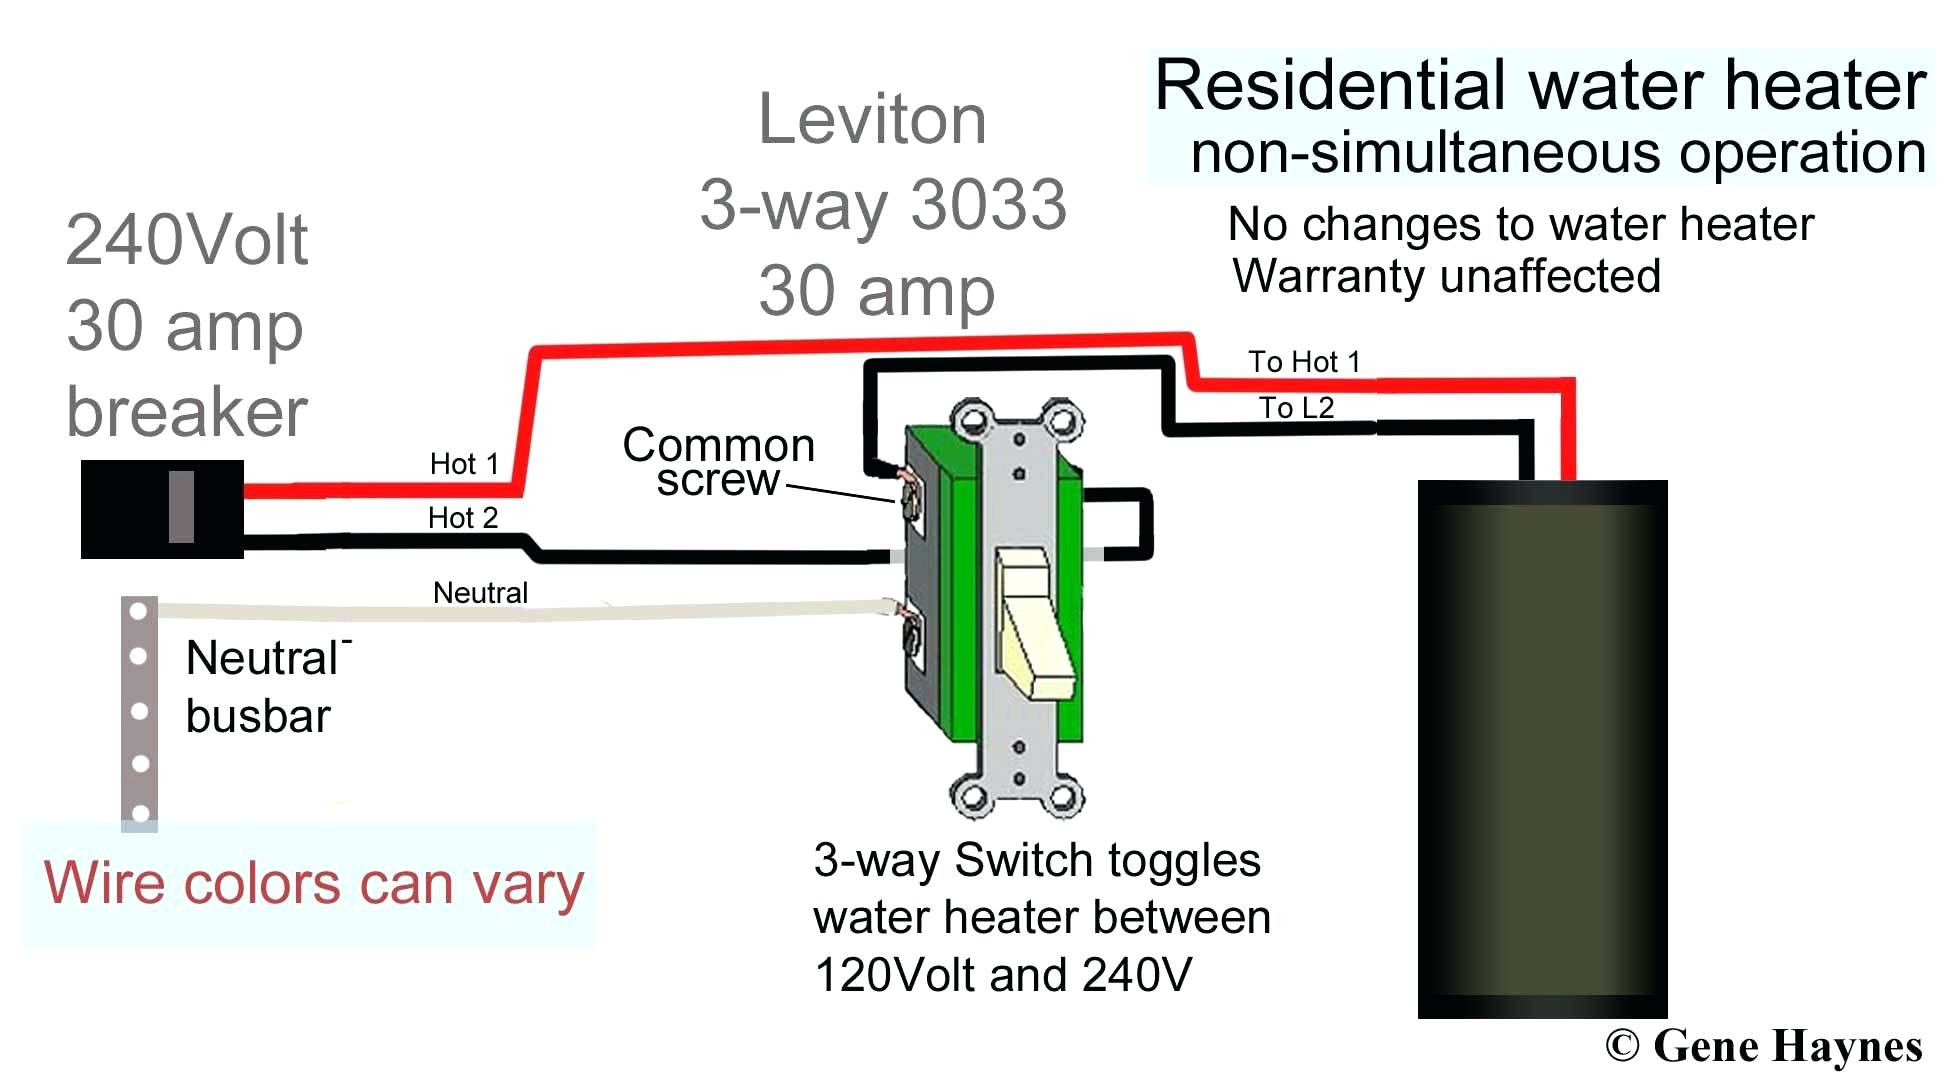 Honeywell Baseboard Heater Thermostat Wiring Diagram Best Of Dimplex - Baseboard Heater Thermostat Wiring Diagram